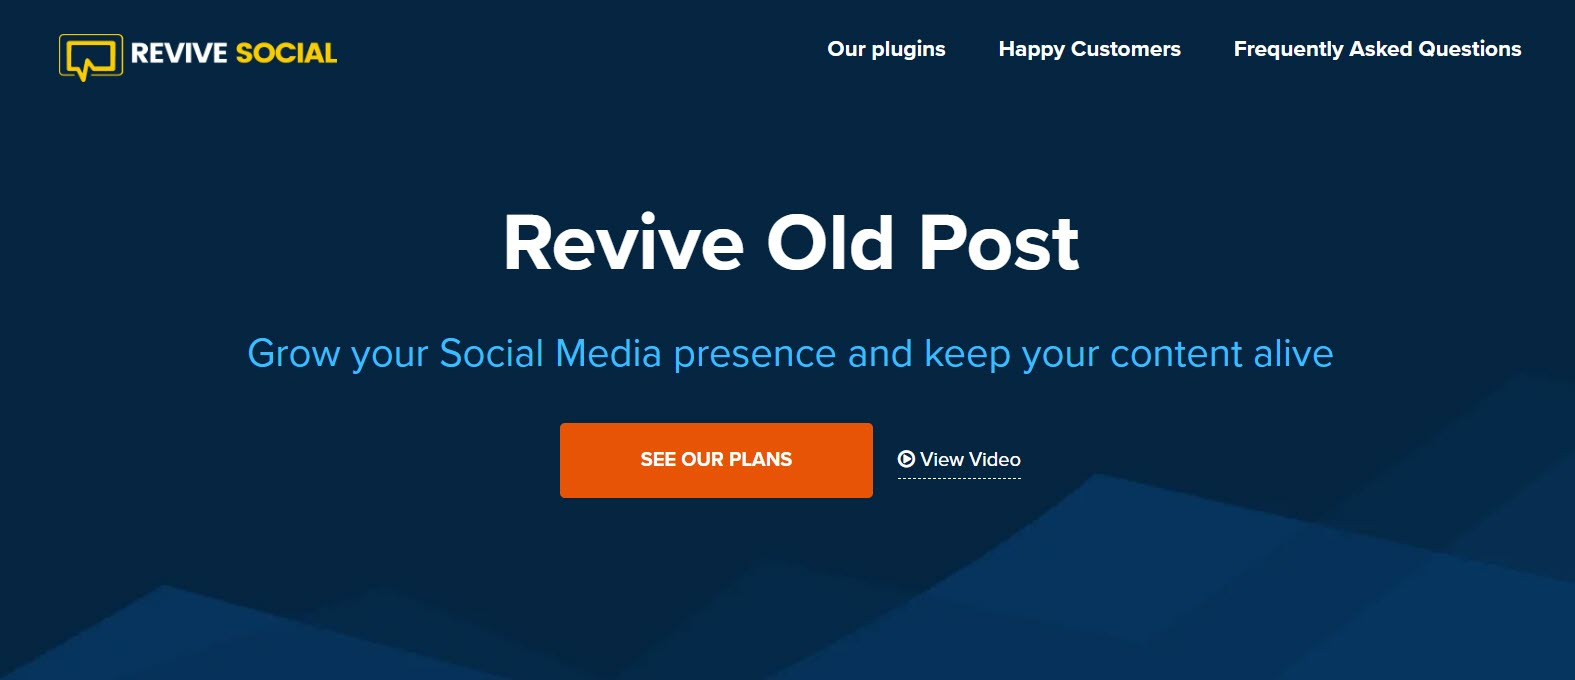 Revive Old Posts is one of the best Lead Generation Tools